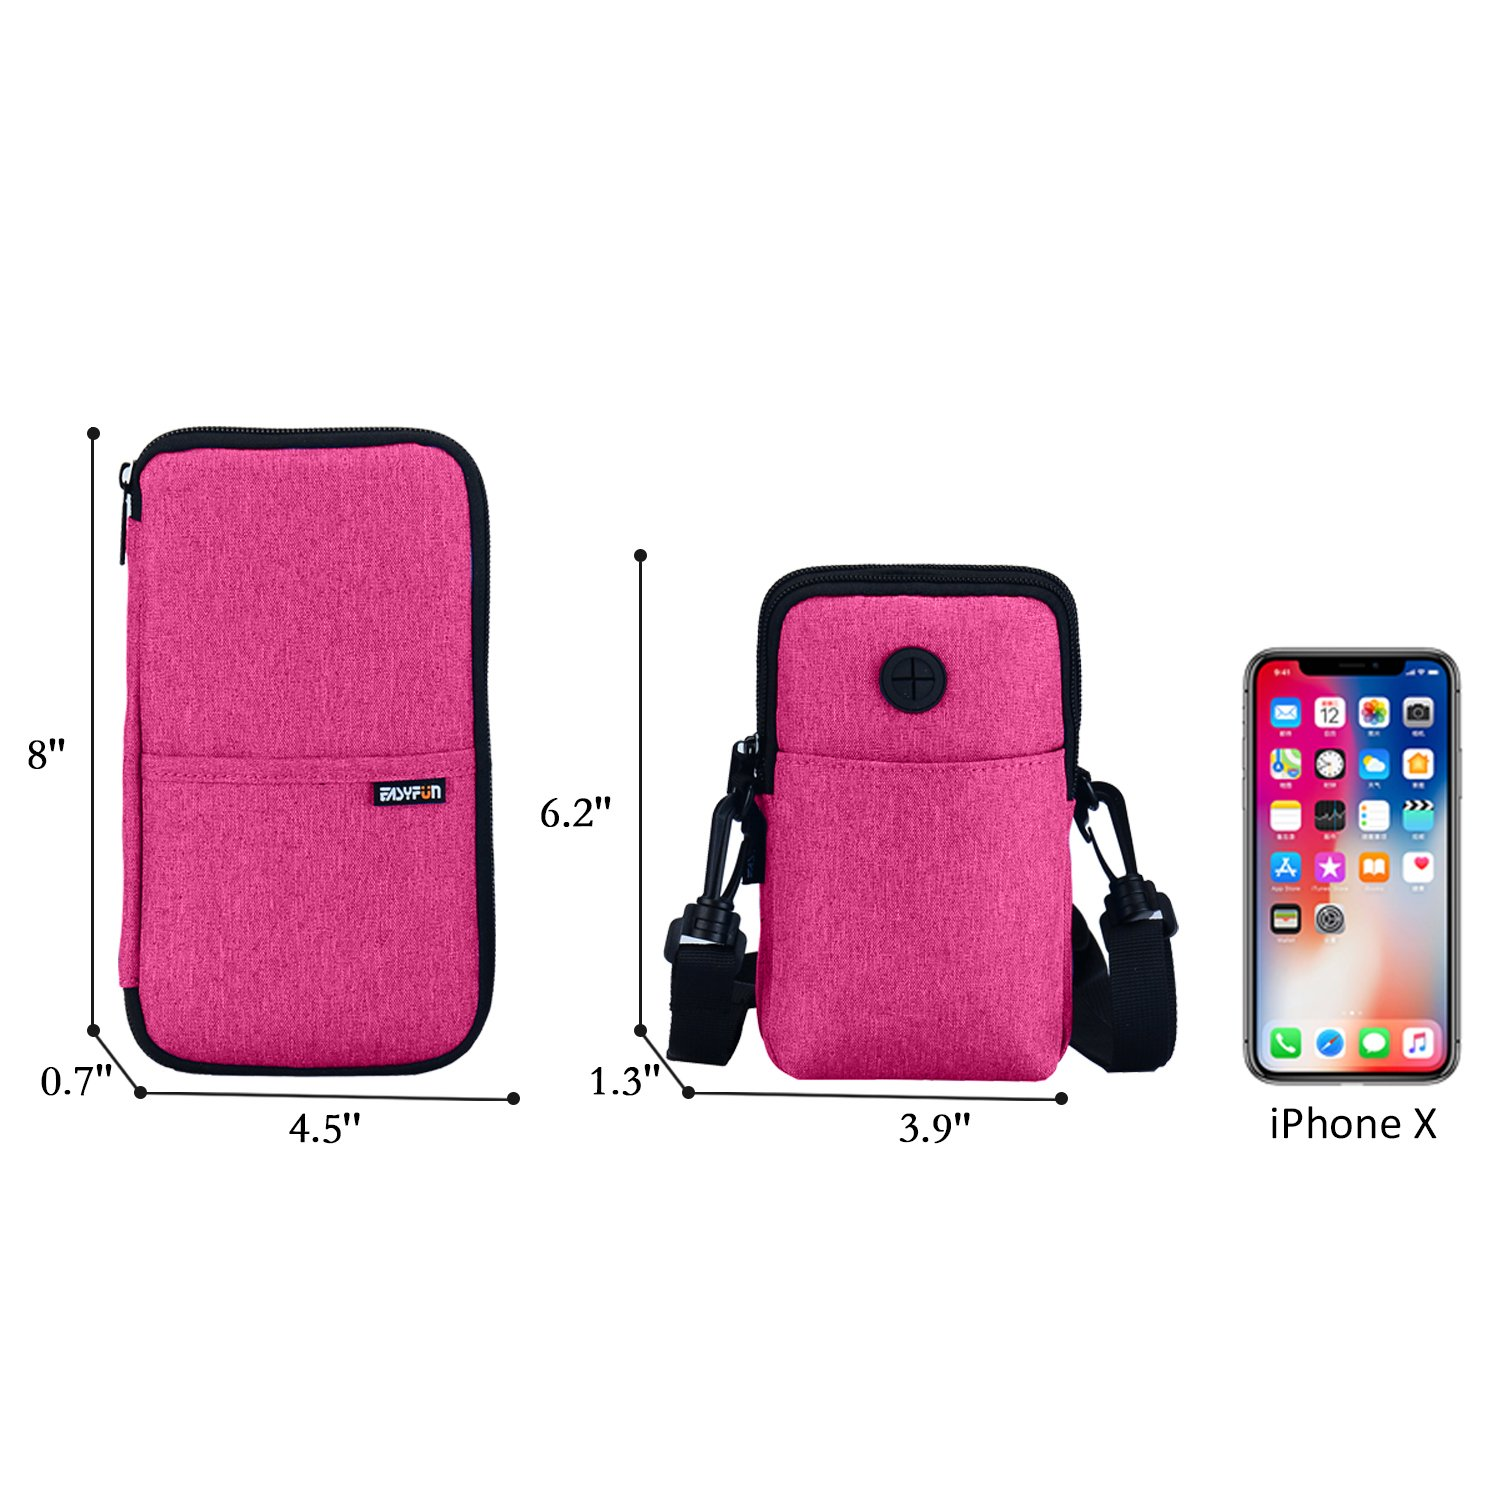 Easyfun RFID Passport Holder Cover With Neck Pouch Travel Wallet Case For Men /& Women